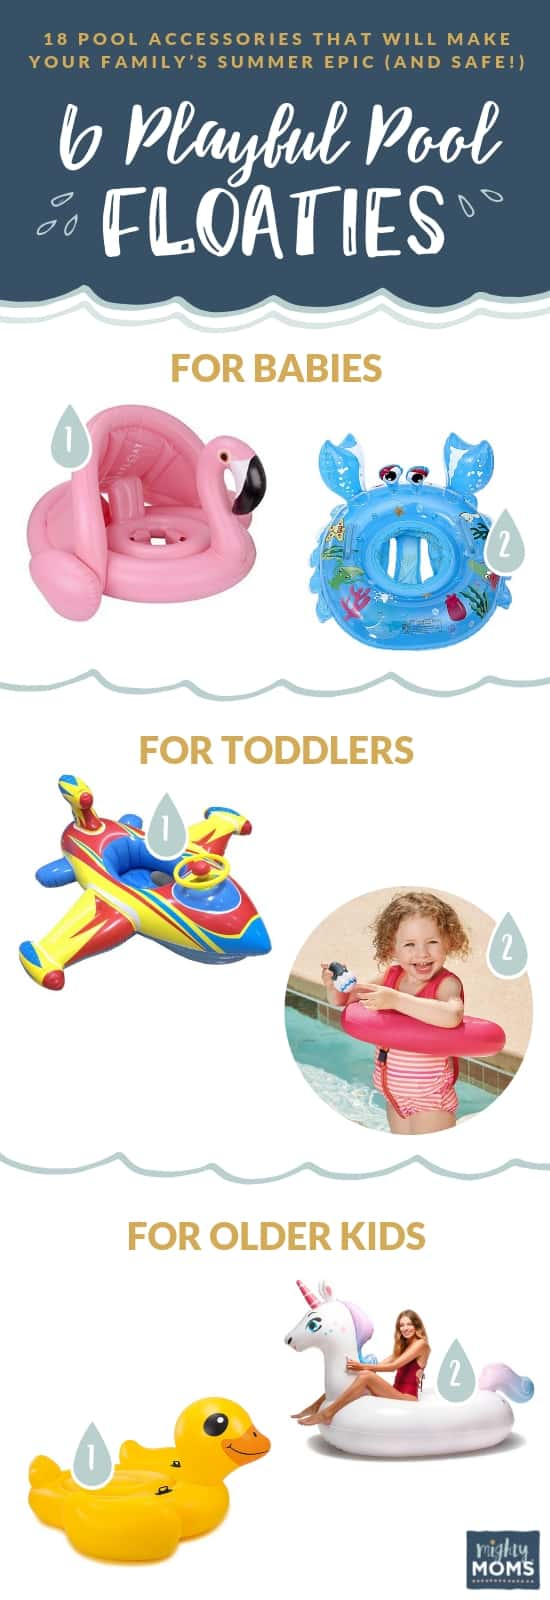 6 Magical Floaties for Lazy Days   MightyMoms.club